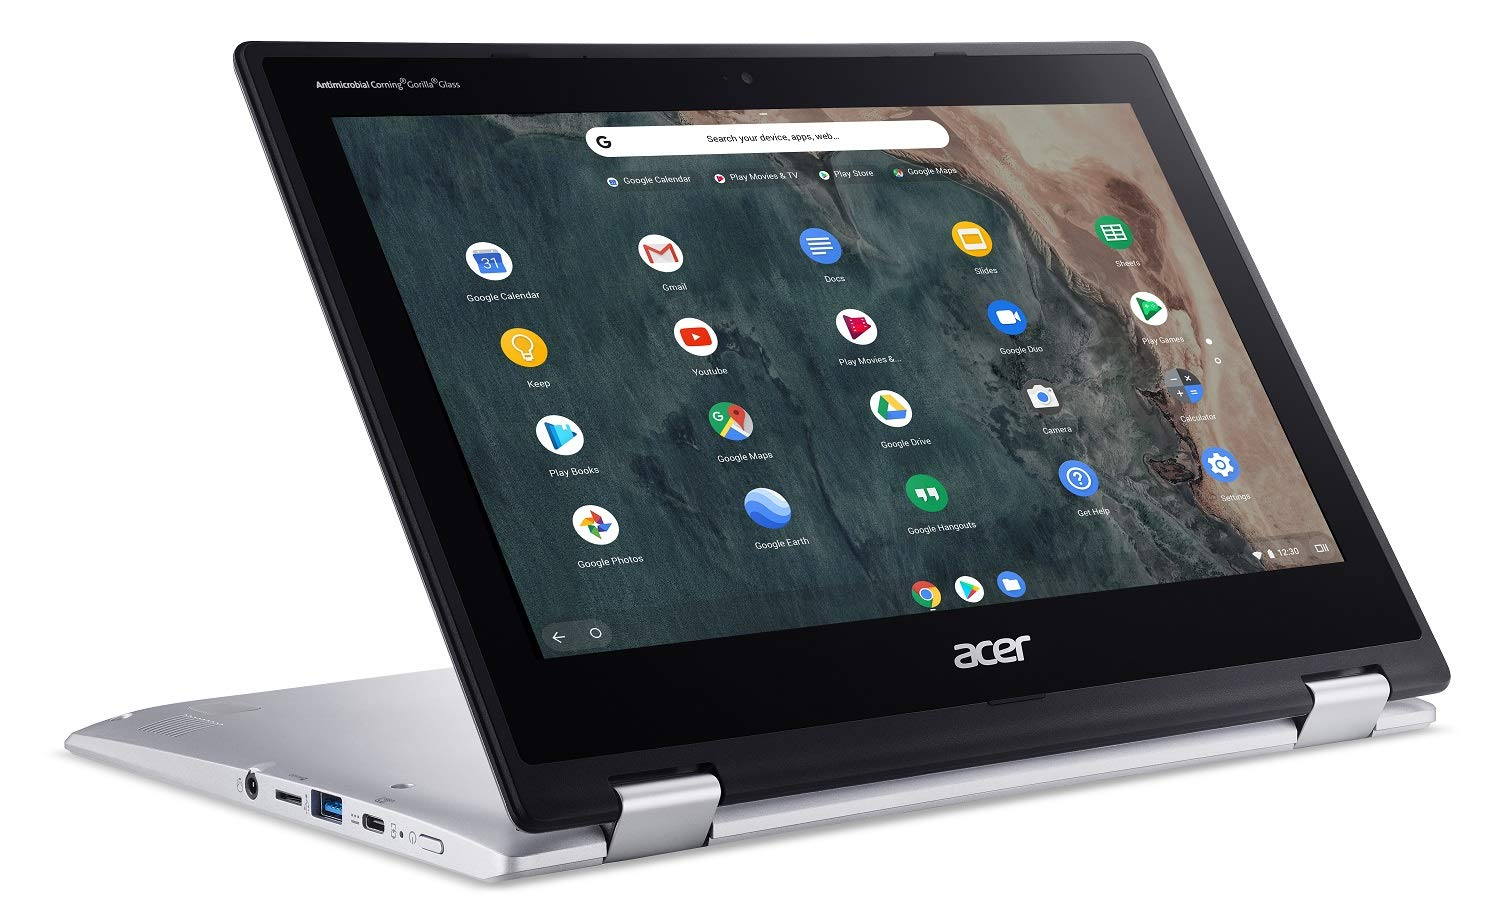 Acer Chromebook Spin 311 in stand mode at an angle on a white background